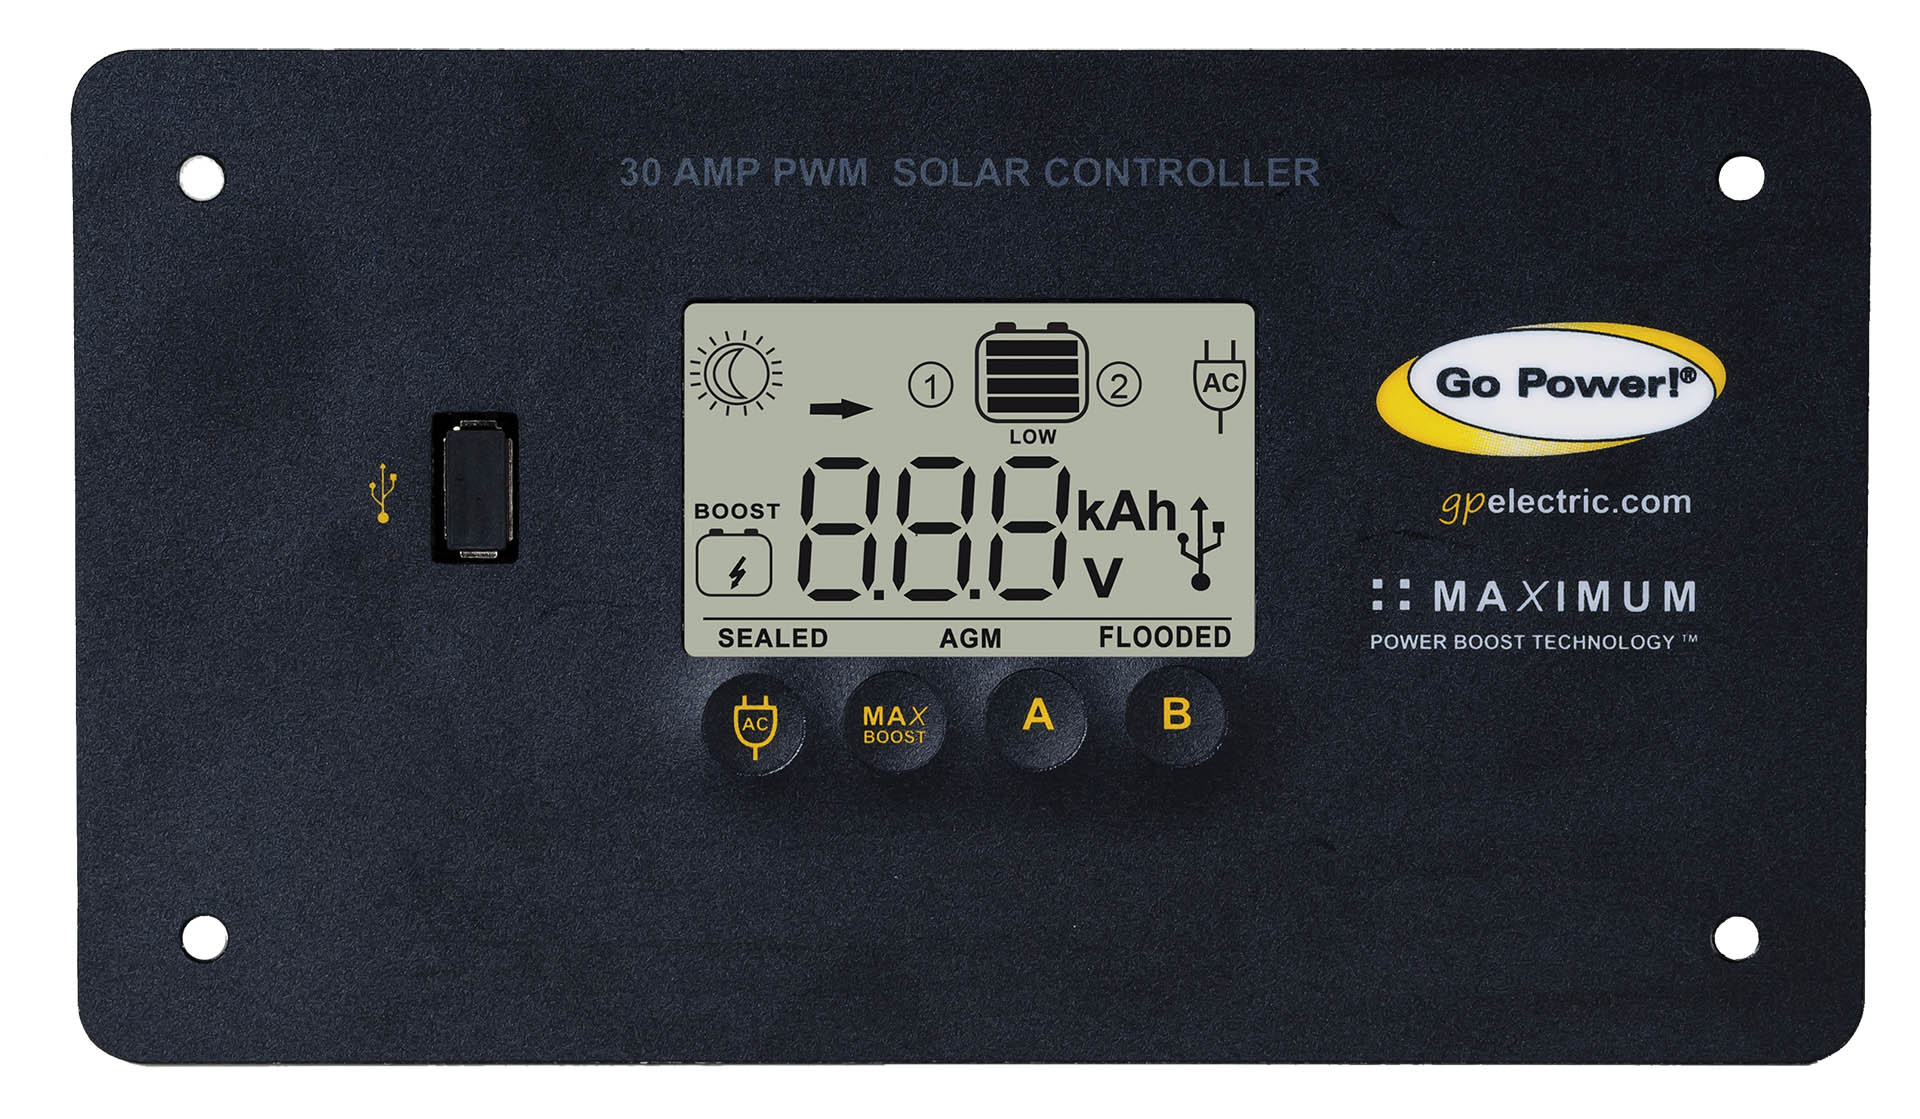 30 Amp Solar Charge Controller Pwm Go Power Products Wiring Diagram Price Sign Works With Our Any Of Larger Kits Or Complete Systems Accepts 80 500 Watts